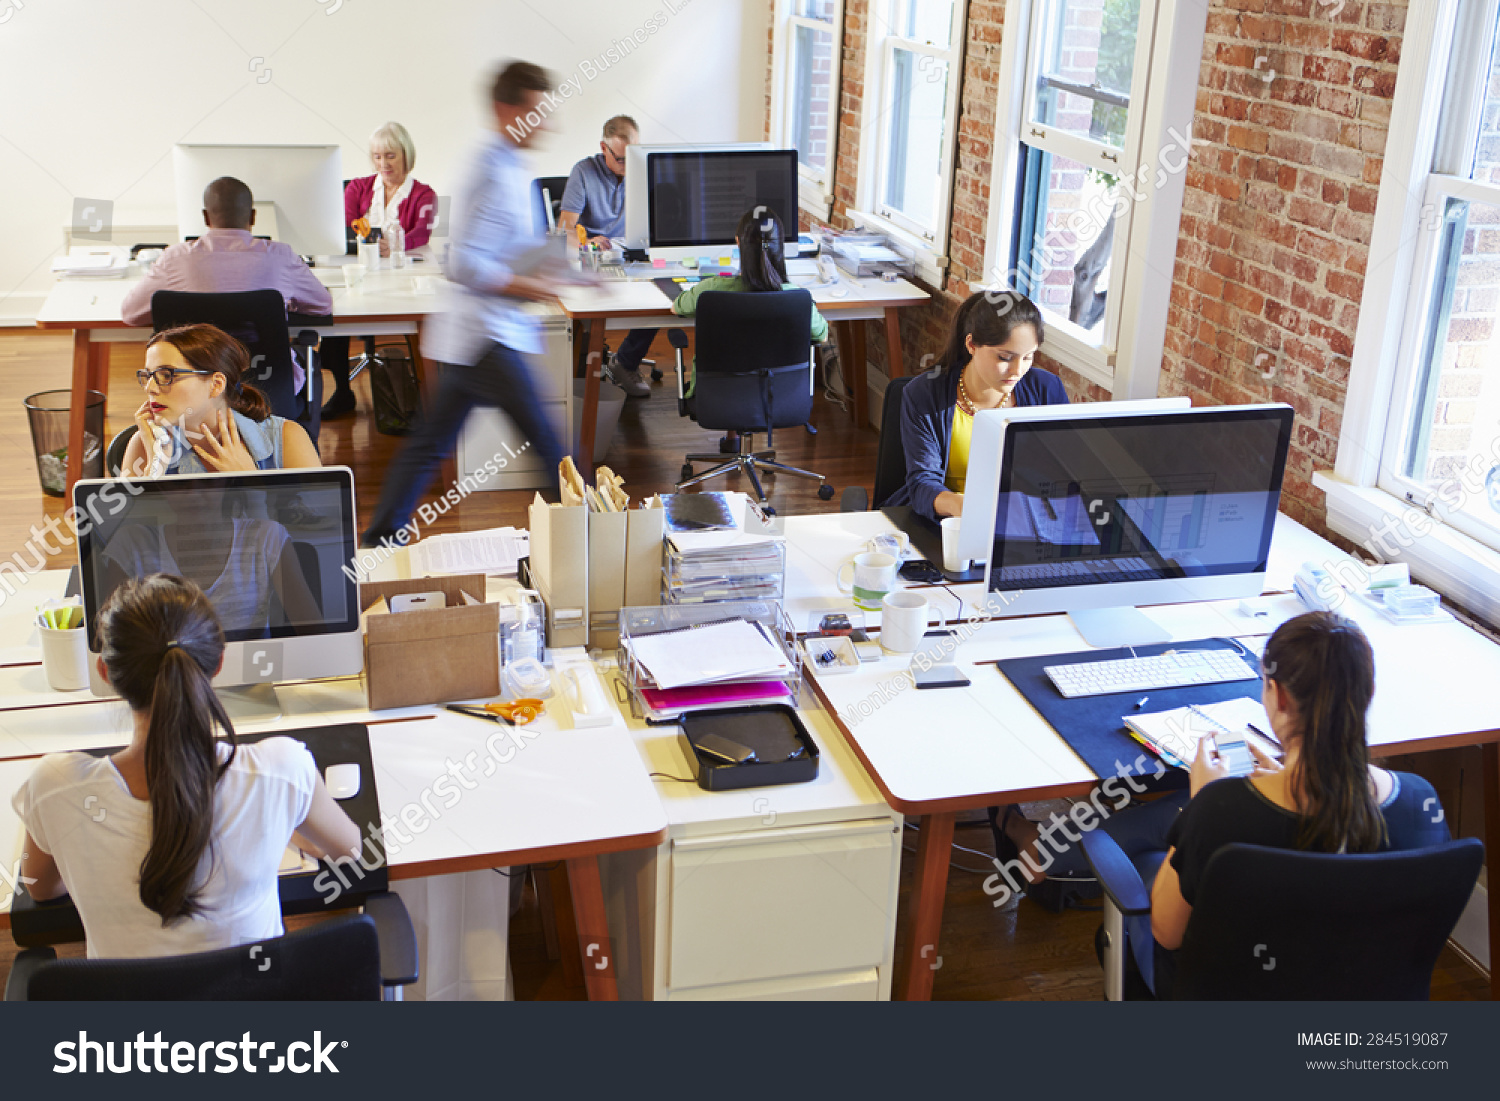 stock-photo-wide-angle-view-of-busy-design-office-with-workers-at-desks-284519087